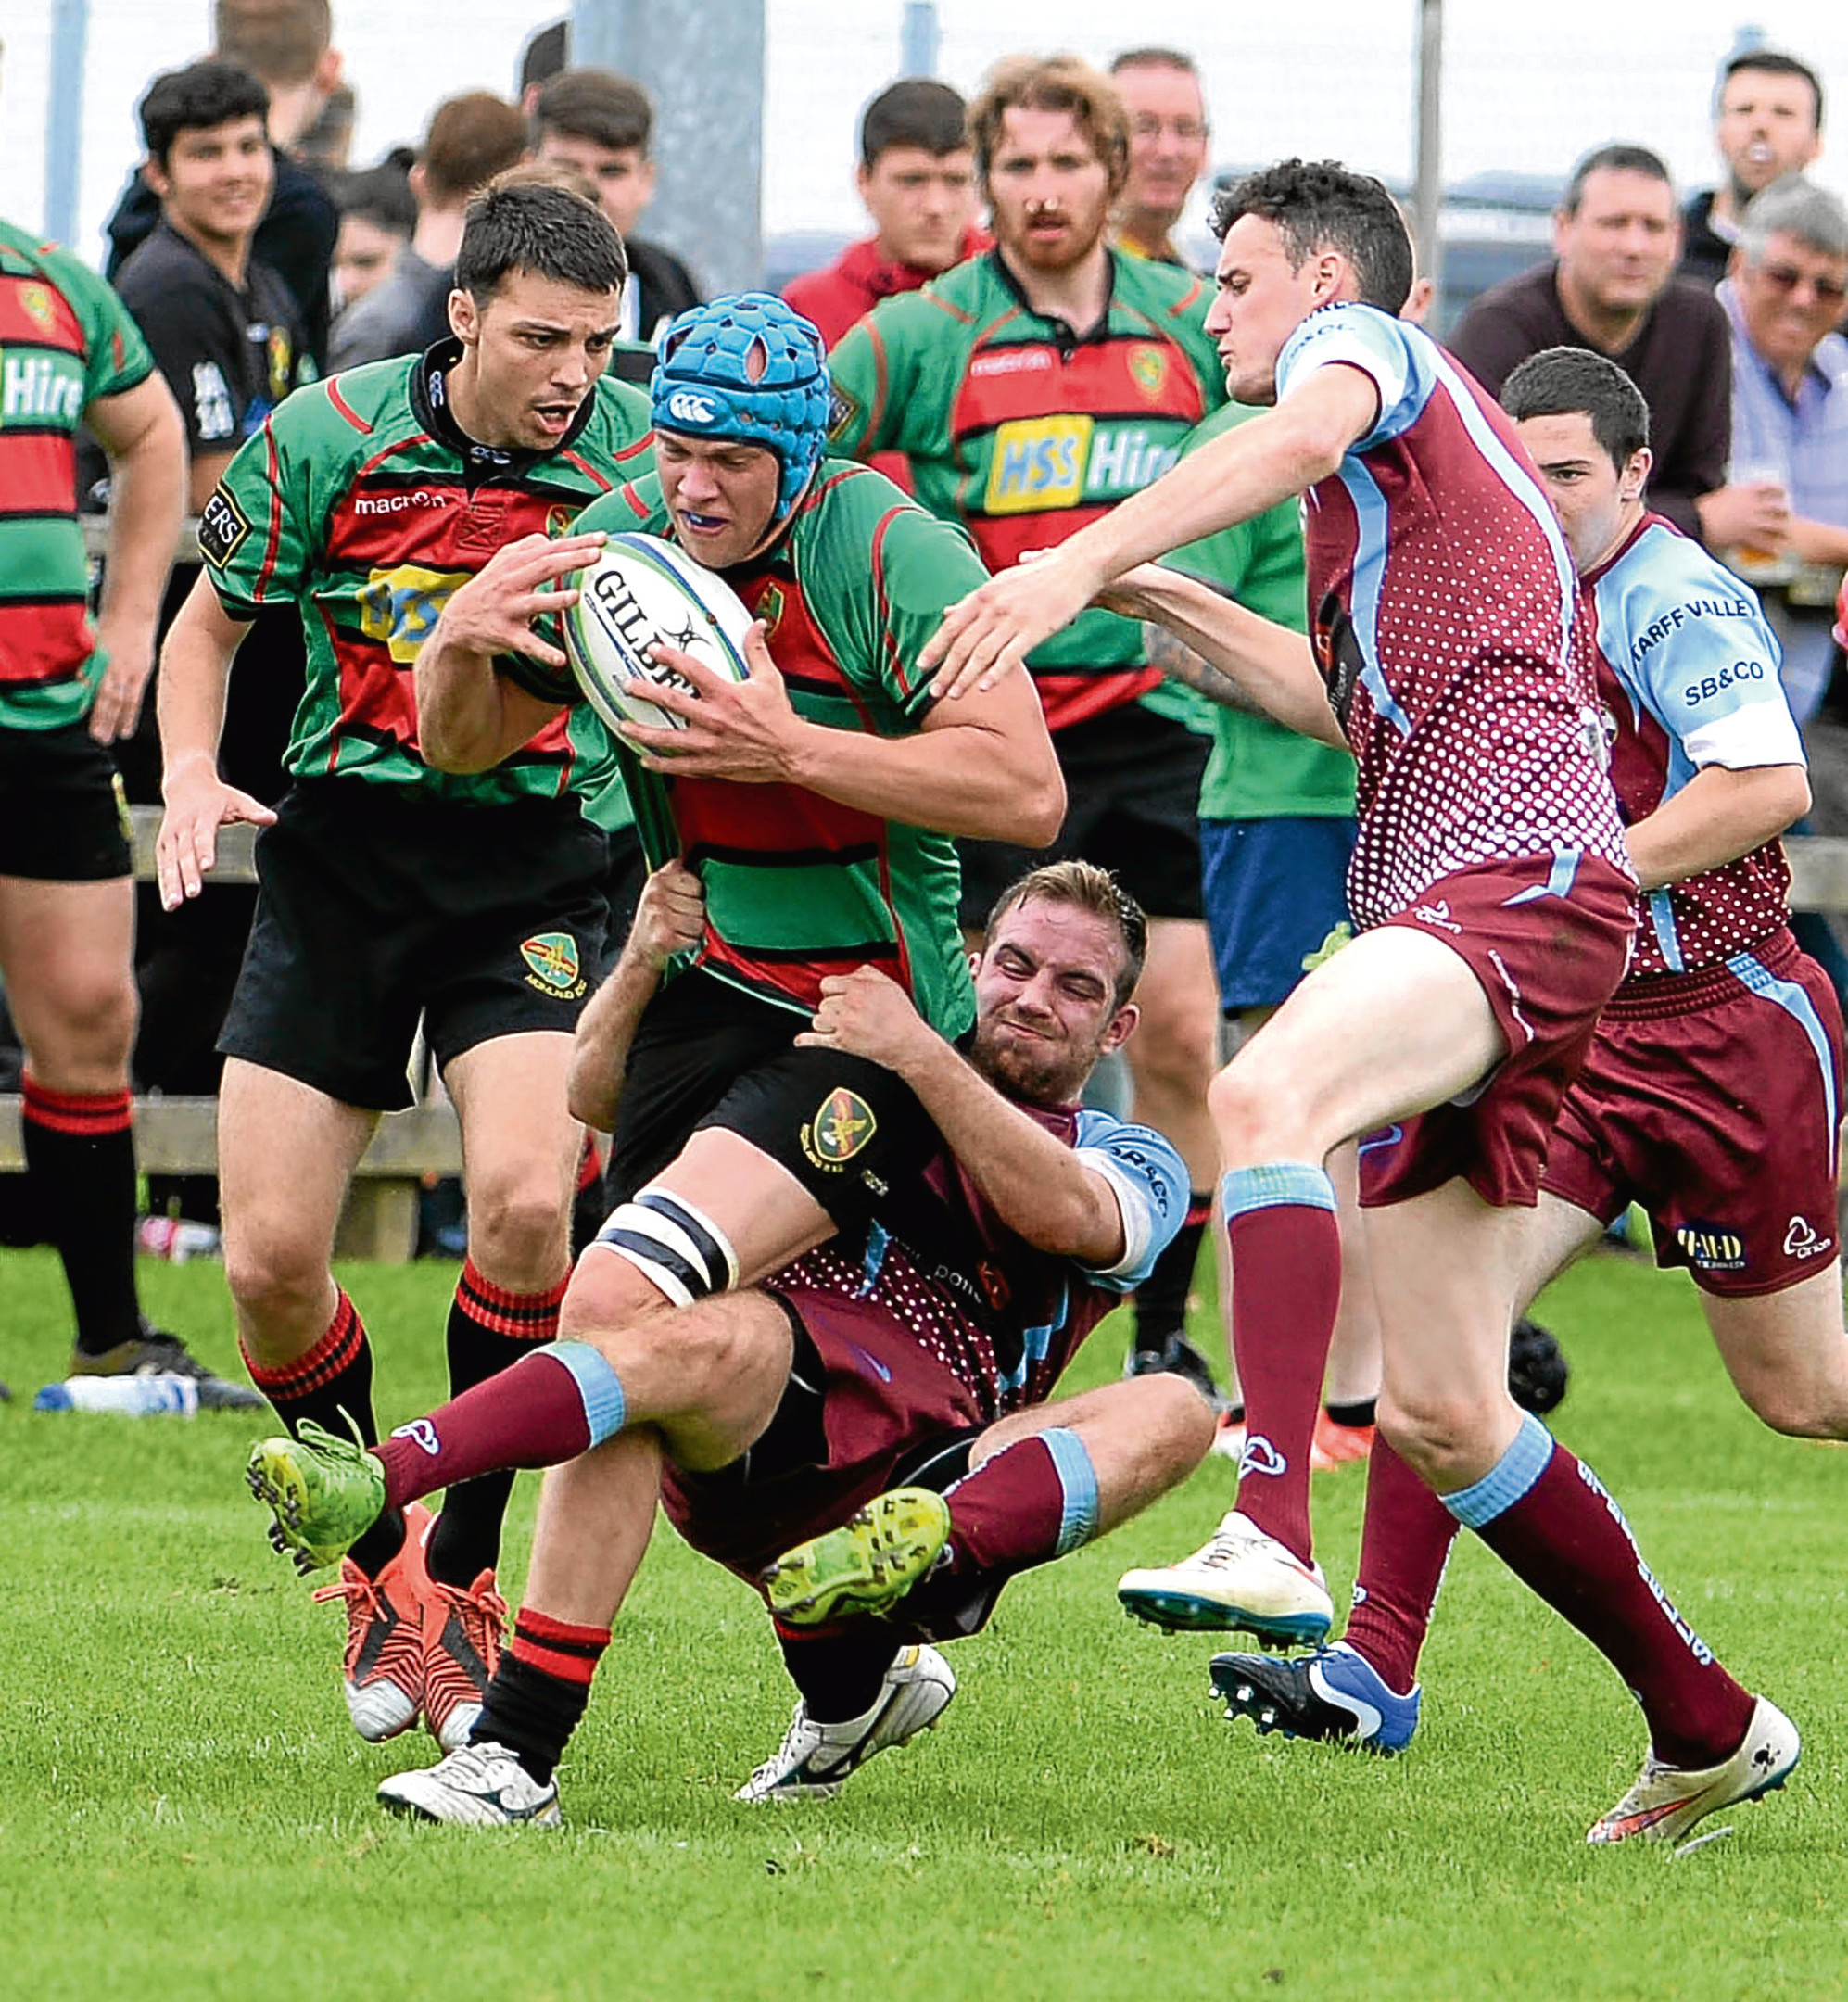 Highland RFC V St Boswells RFC BT Cup First Round It takes some desperate tackling to stop Highland's Stuart MacDonald. Pic - Phil Downie